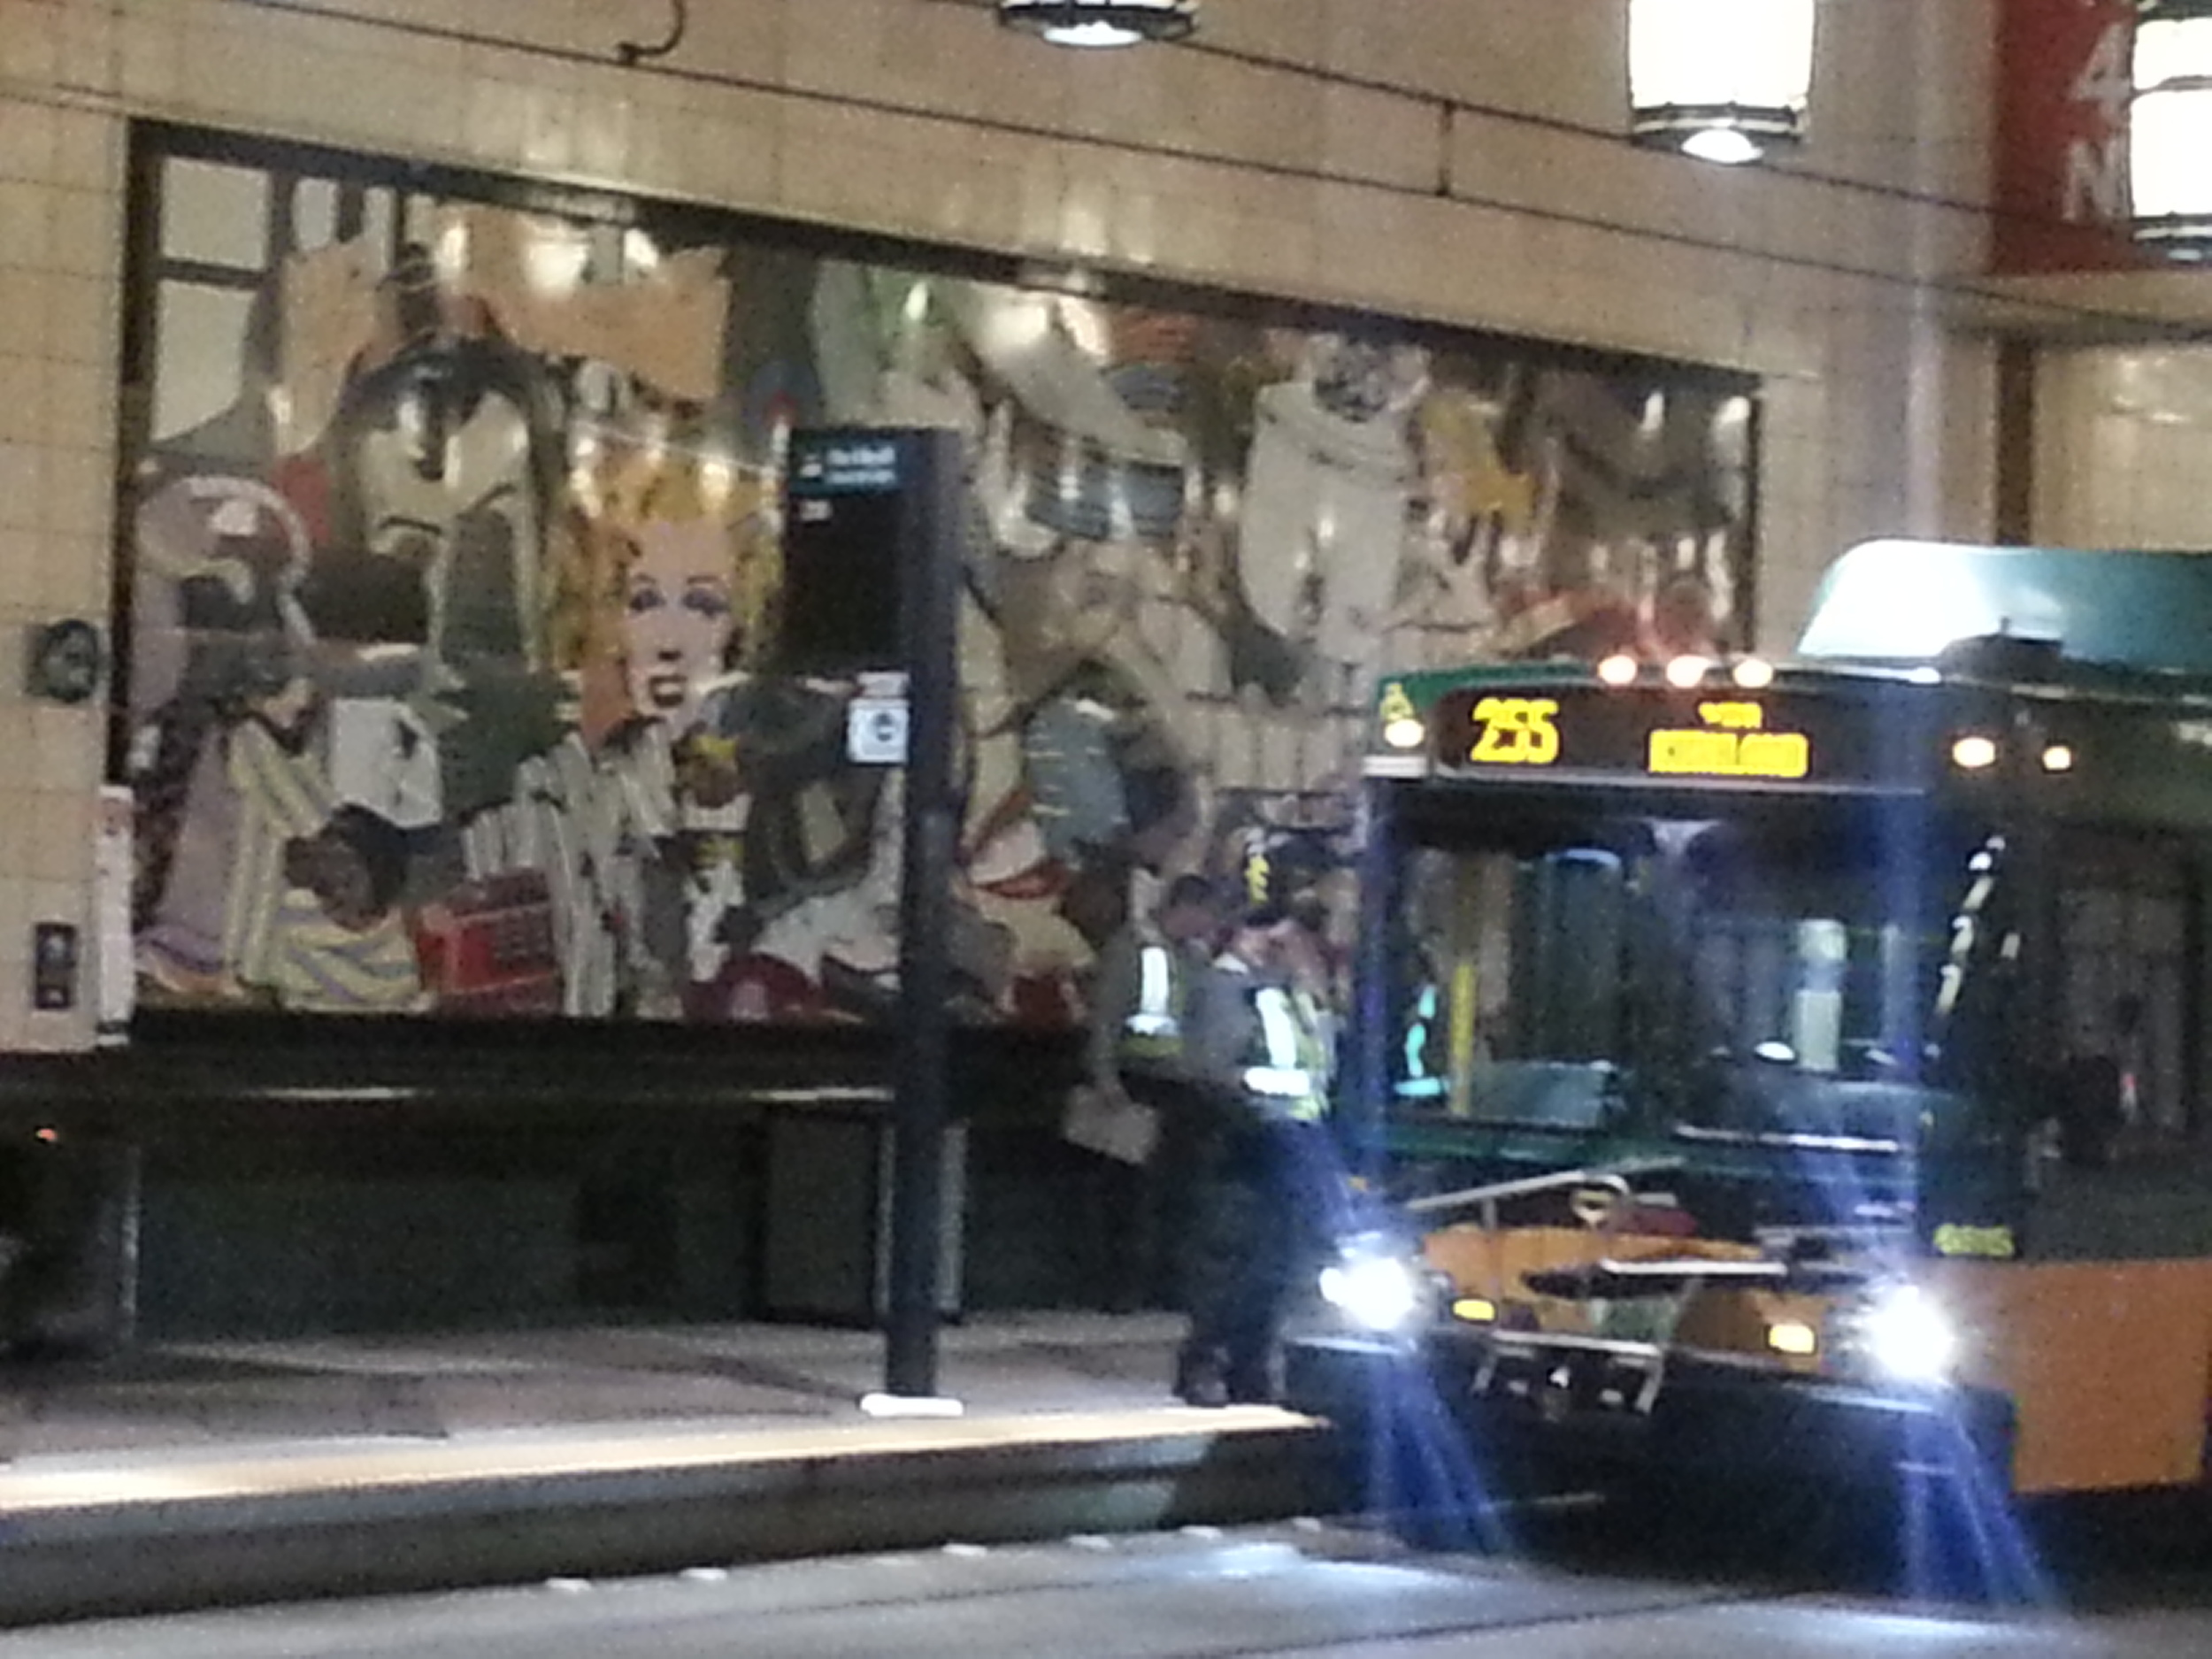 Westlake Station in downtown Seattle serves both the light rail line and bus lines creating a vibrant, and colorful transit hub.